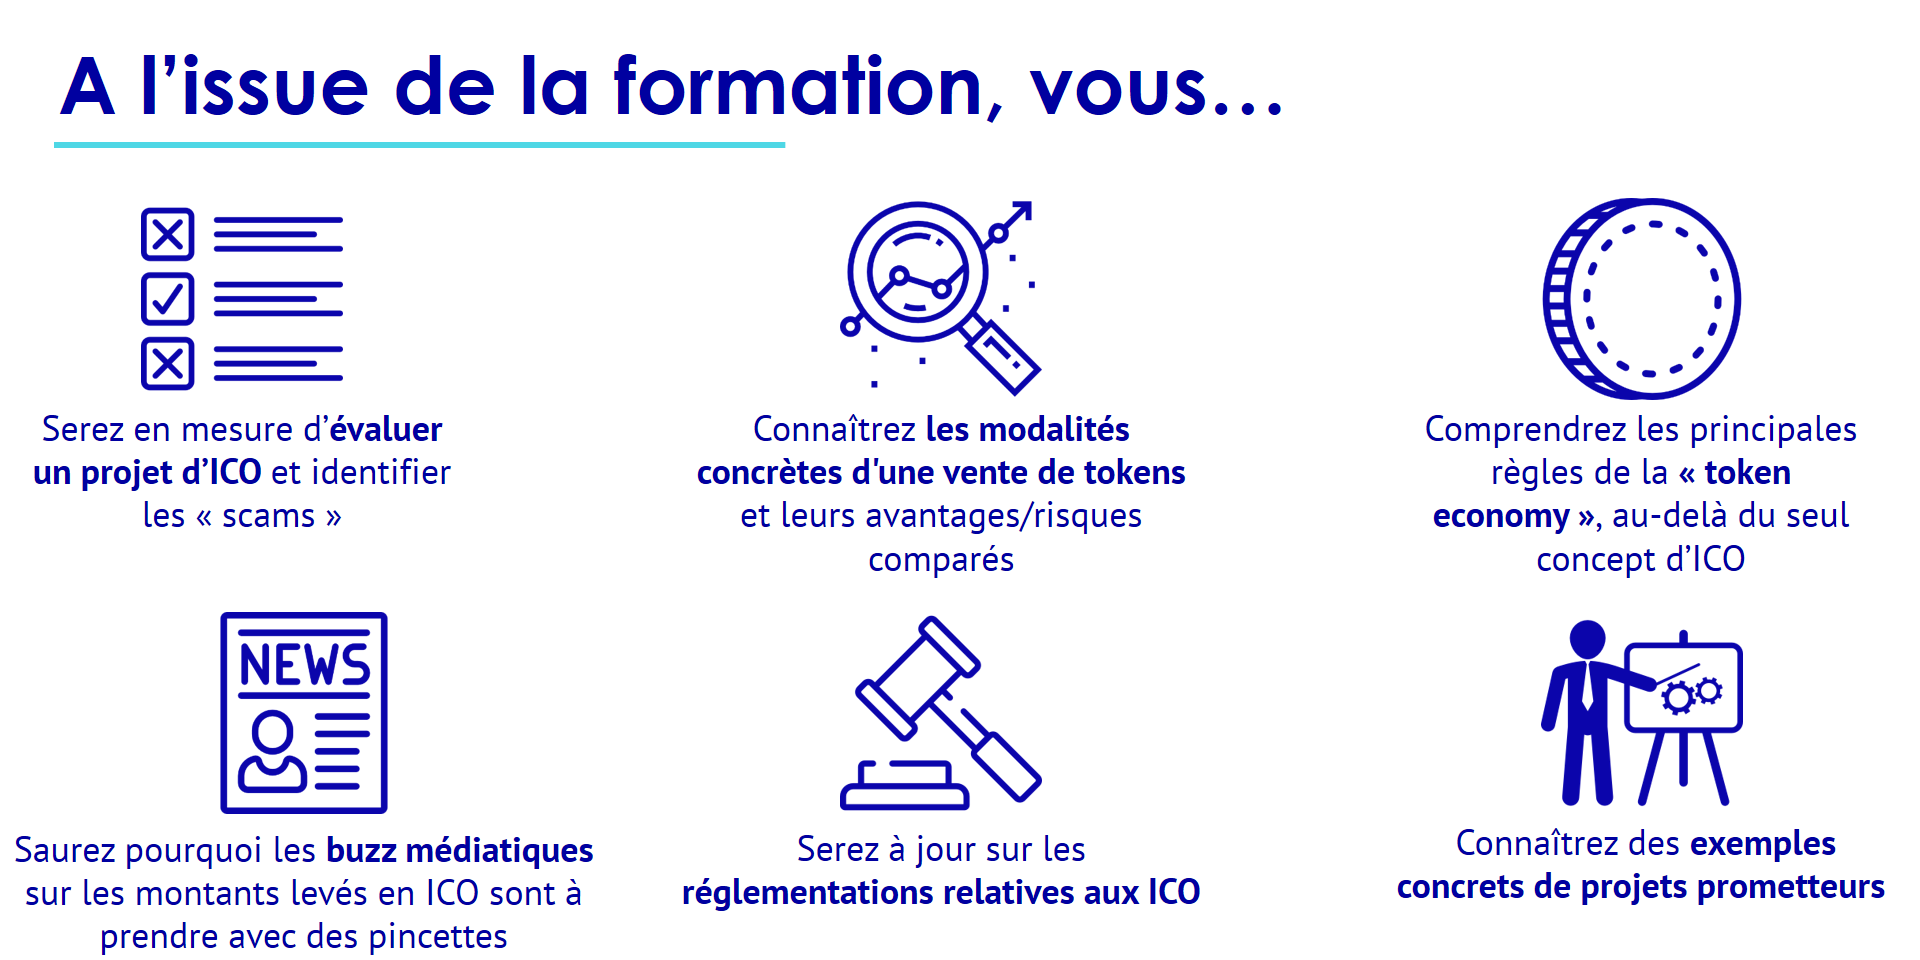 Formation ICO (Initial Coin Offering)